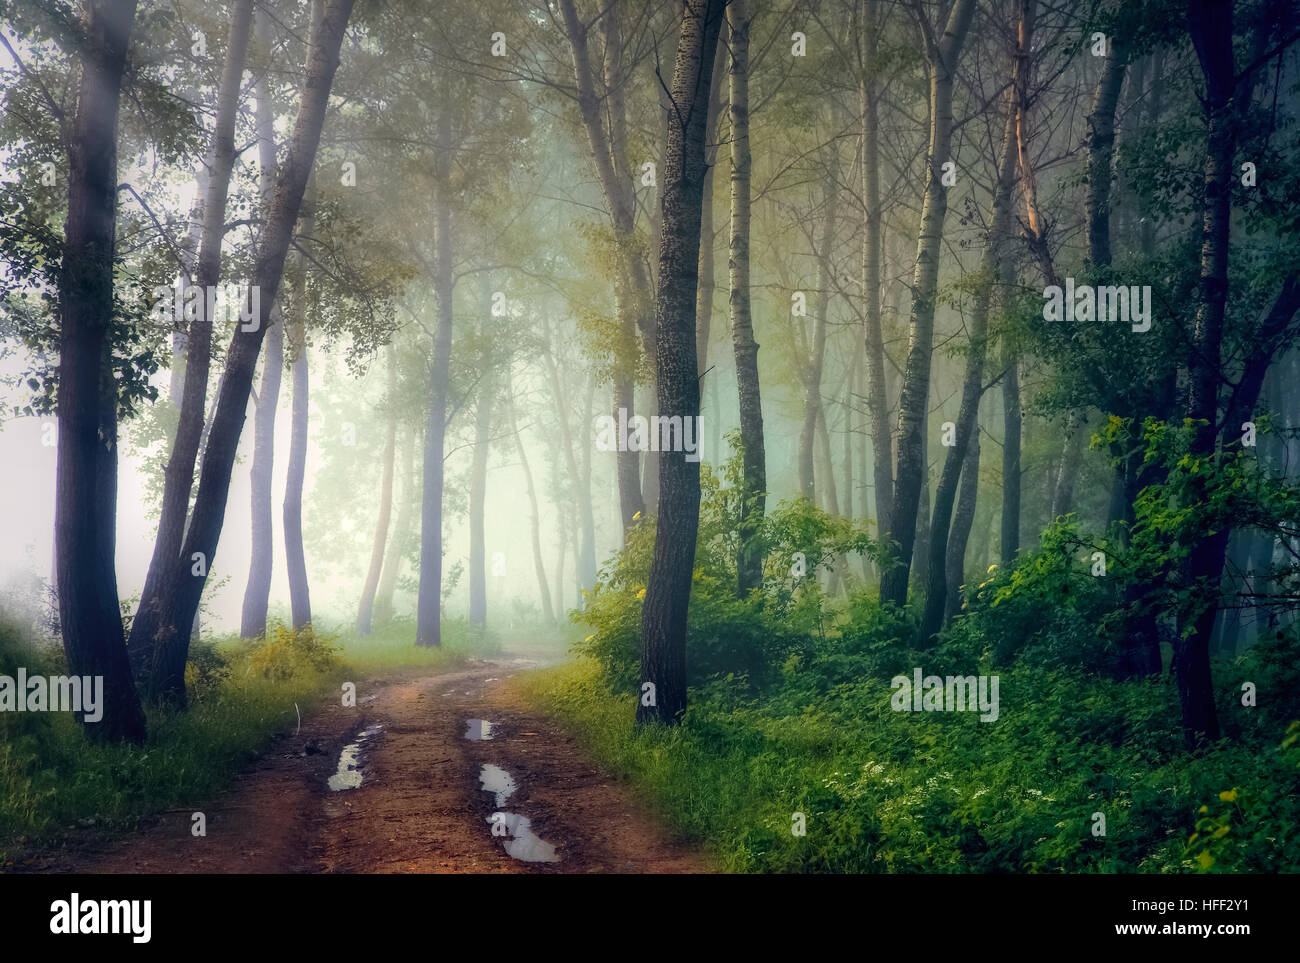 Mystical forest - Stock Image